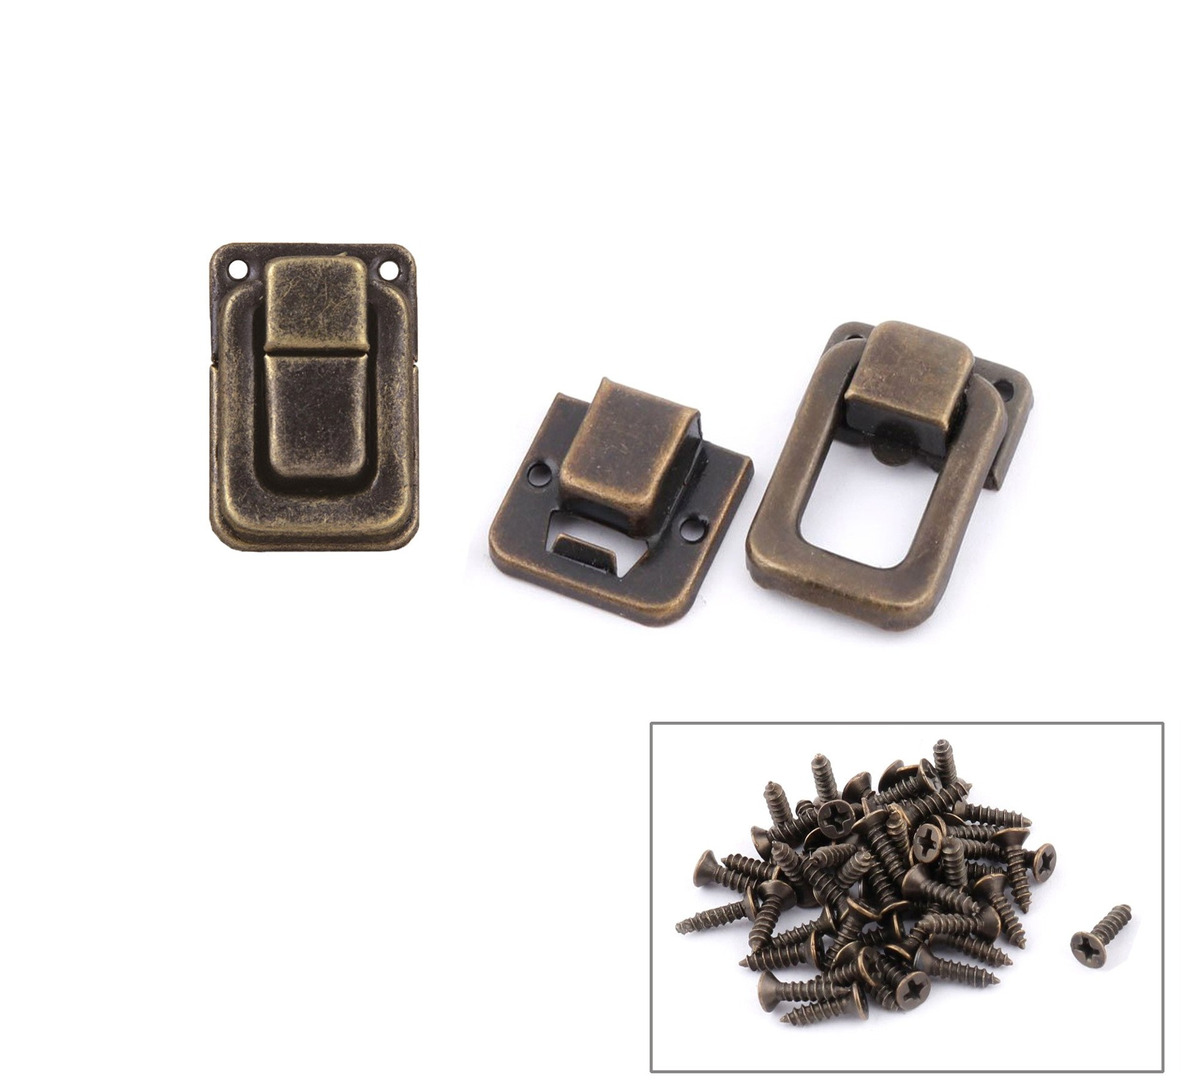 Bronze Tone Antrader 24pcs Clasp Latch Lock Mini Hasp for Toolbox Gift Box Suitcase 1.5 x 1 x 0.35 with Screws